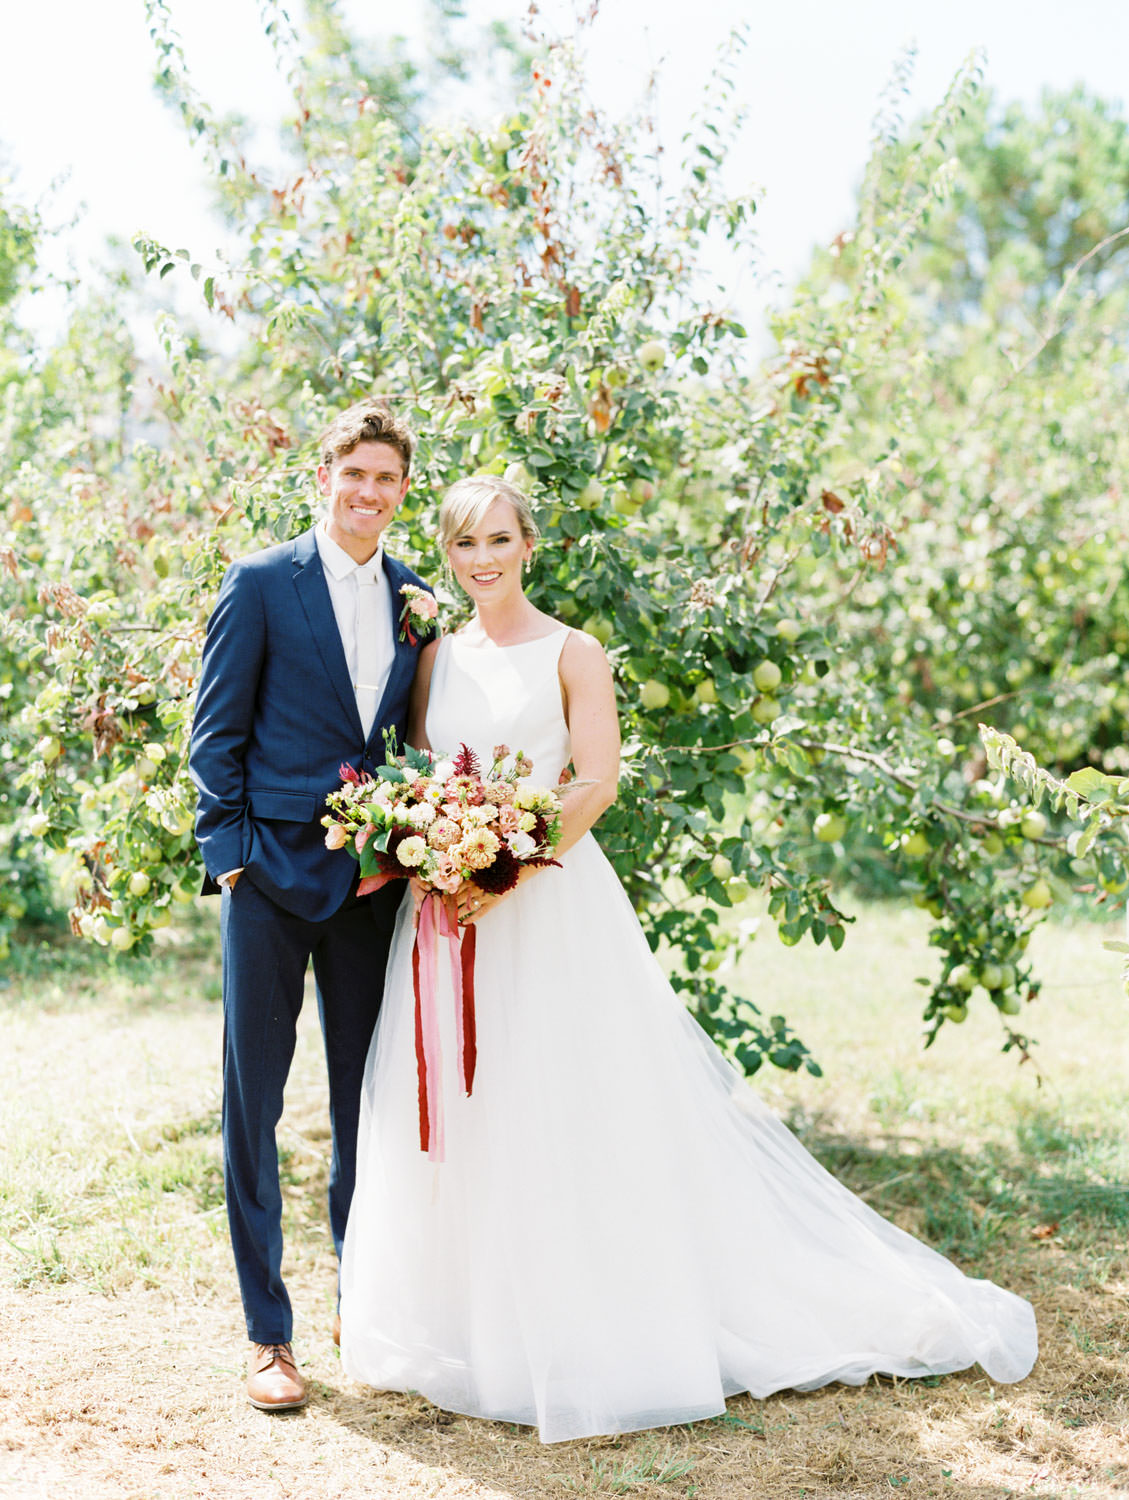 Bride in a classic Mikaella Bridal gown smiling at the camera with the groom in a navy linen suit. Bridal bouquet with ivory, peach, wine, blush flowers and mauve, wine, and blush ribbons. Full Belly Farm on Martha Stewart Weddings by film photographer Cavin Elizabeth Photography